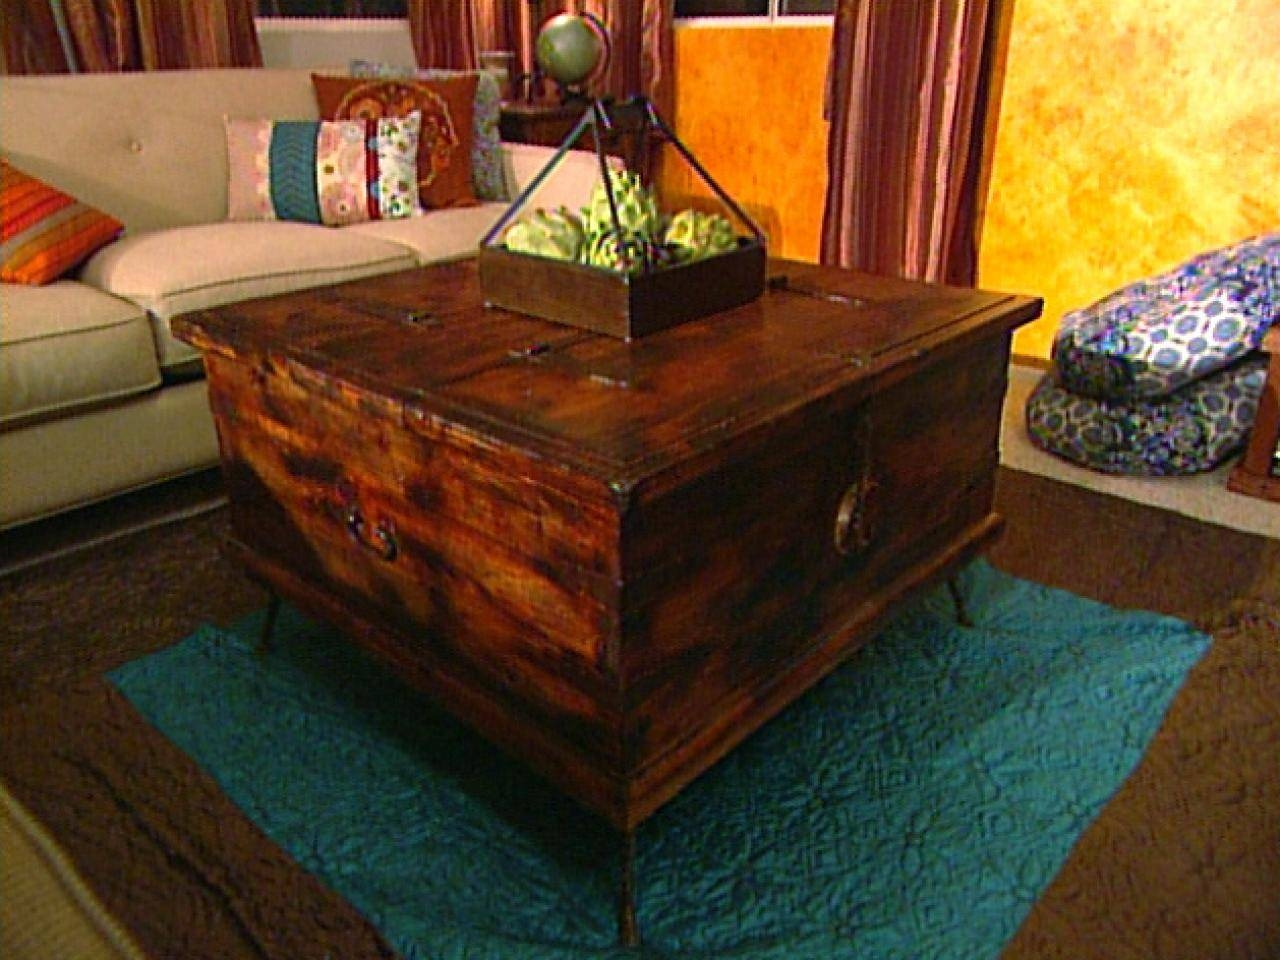 Giving Furniture A Chic Rustic Look   Hgtv with regard to Rustic Style Coffee Tables (Image 19 of 30)